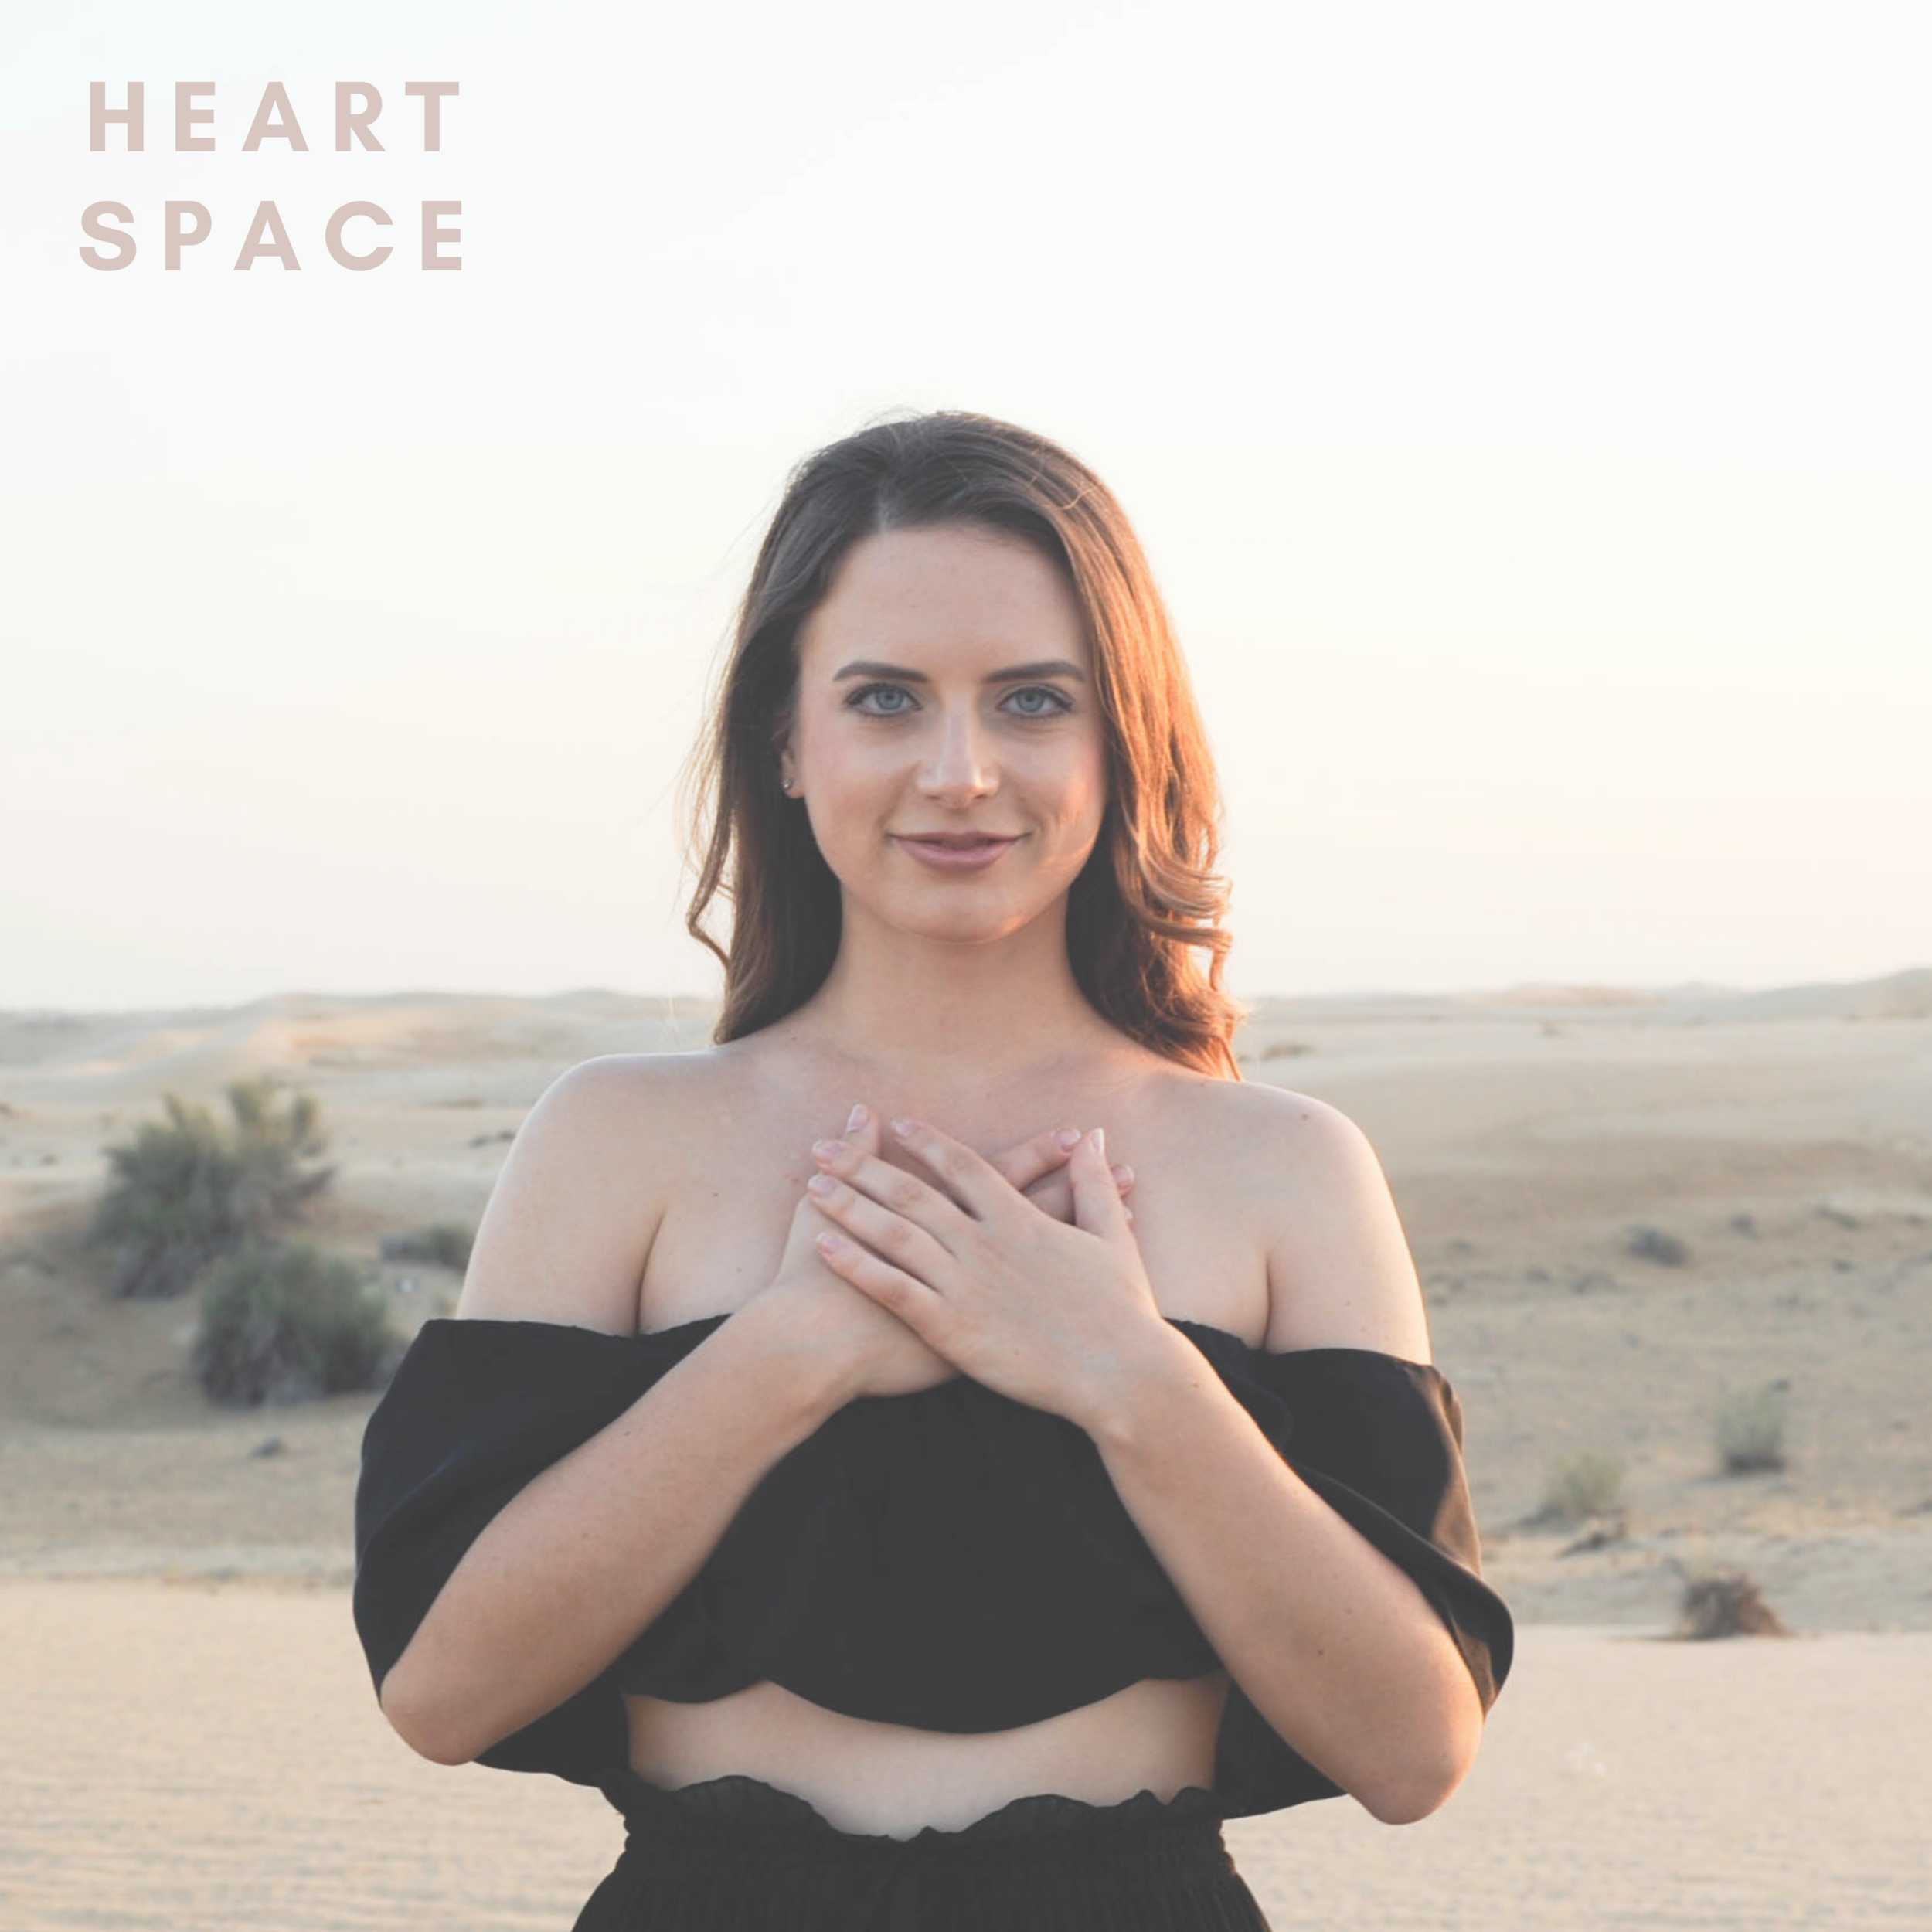 sarah-lewis-heart-space-spiritual-podcast-intuition